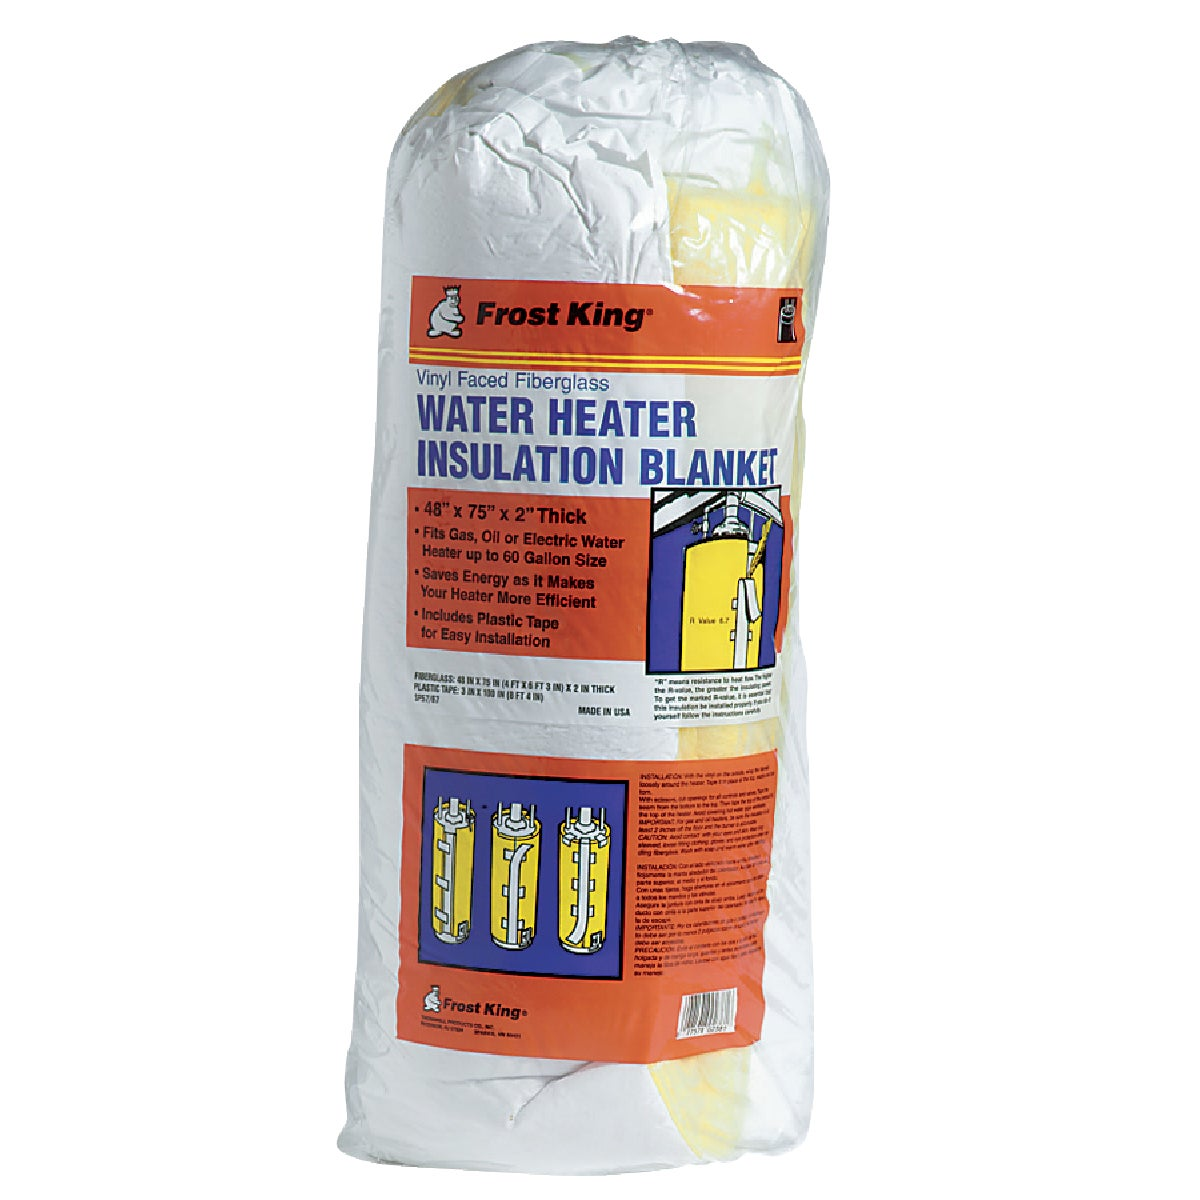 Thermwell Prods. Co. WATER HEATER JACKET SP57/67